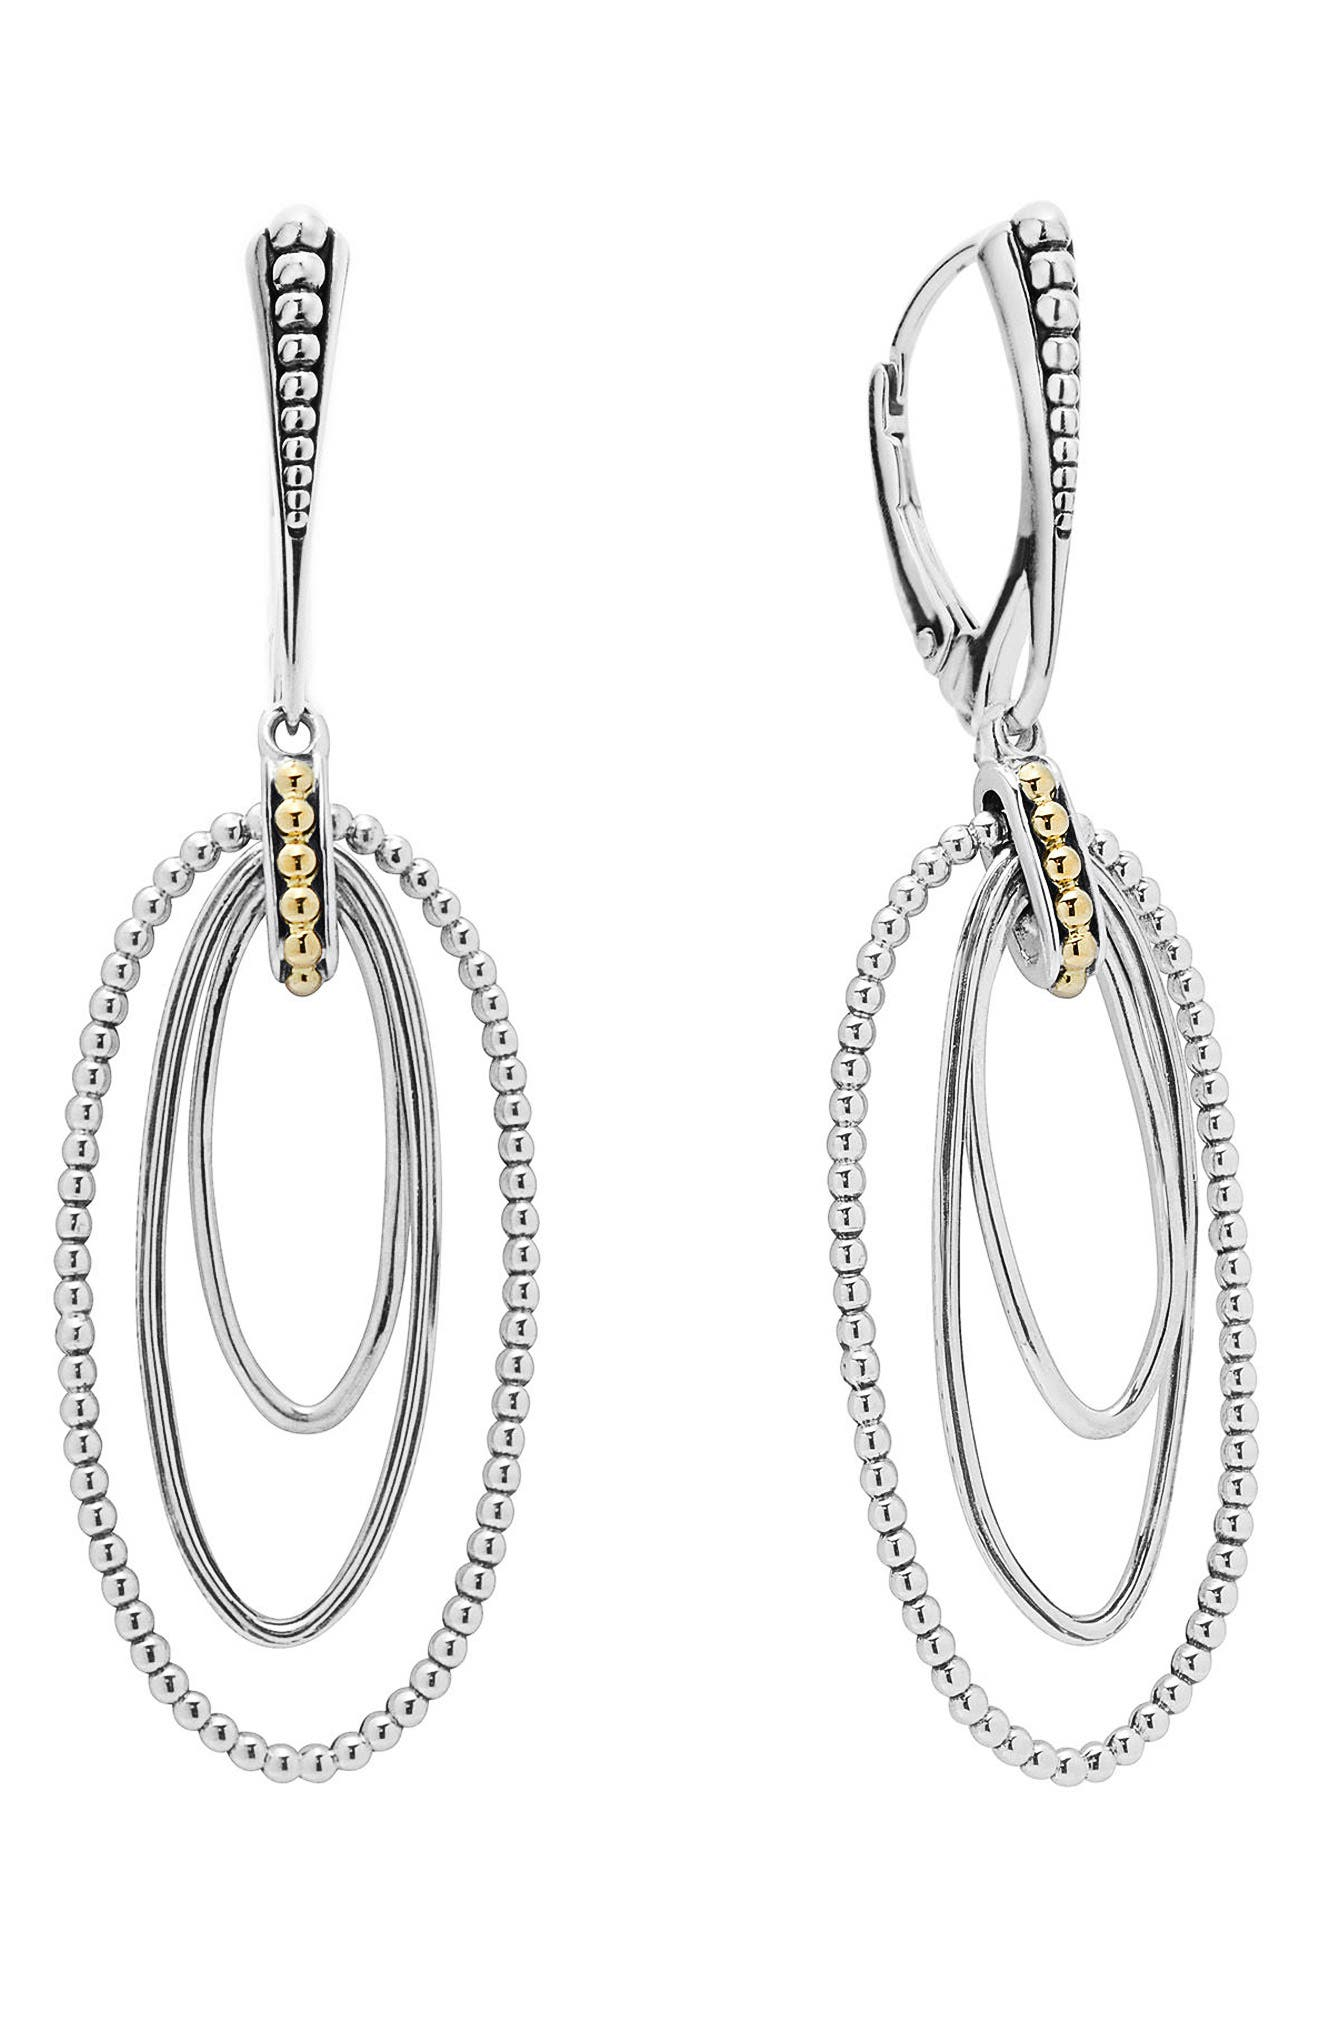 Caviar 'Superfine' Two-Tone Drop Earrings,                         Main,                         color, Silver/ Gold